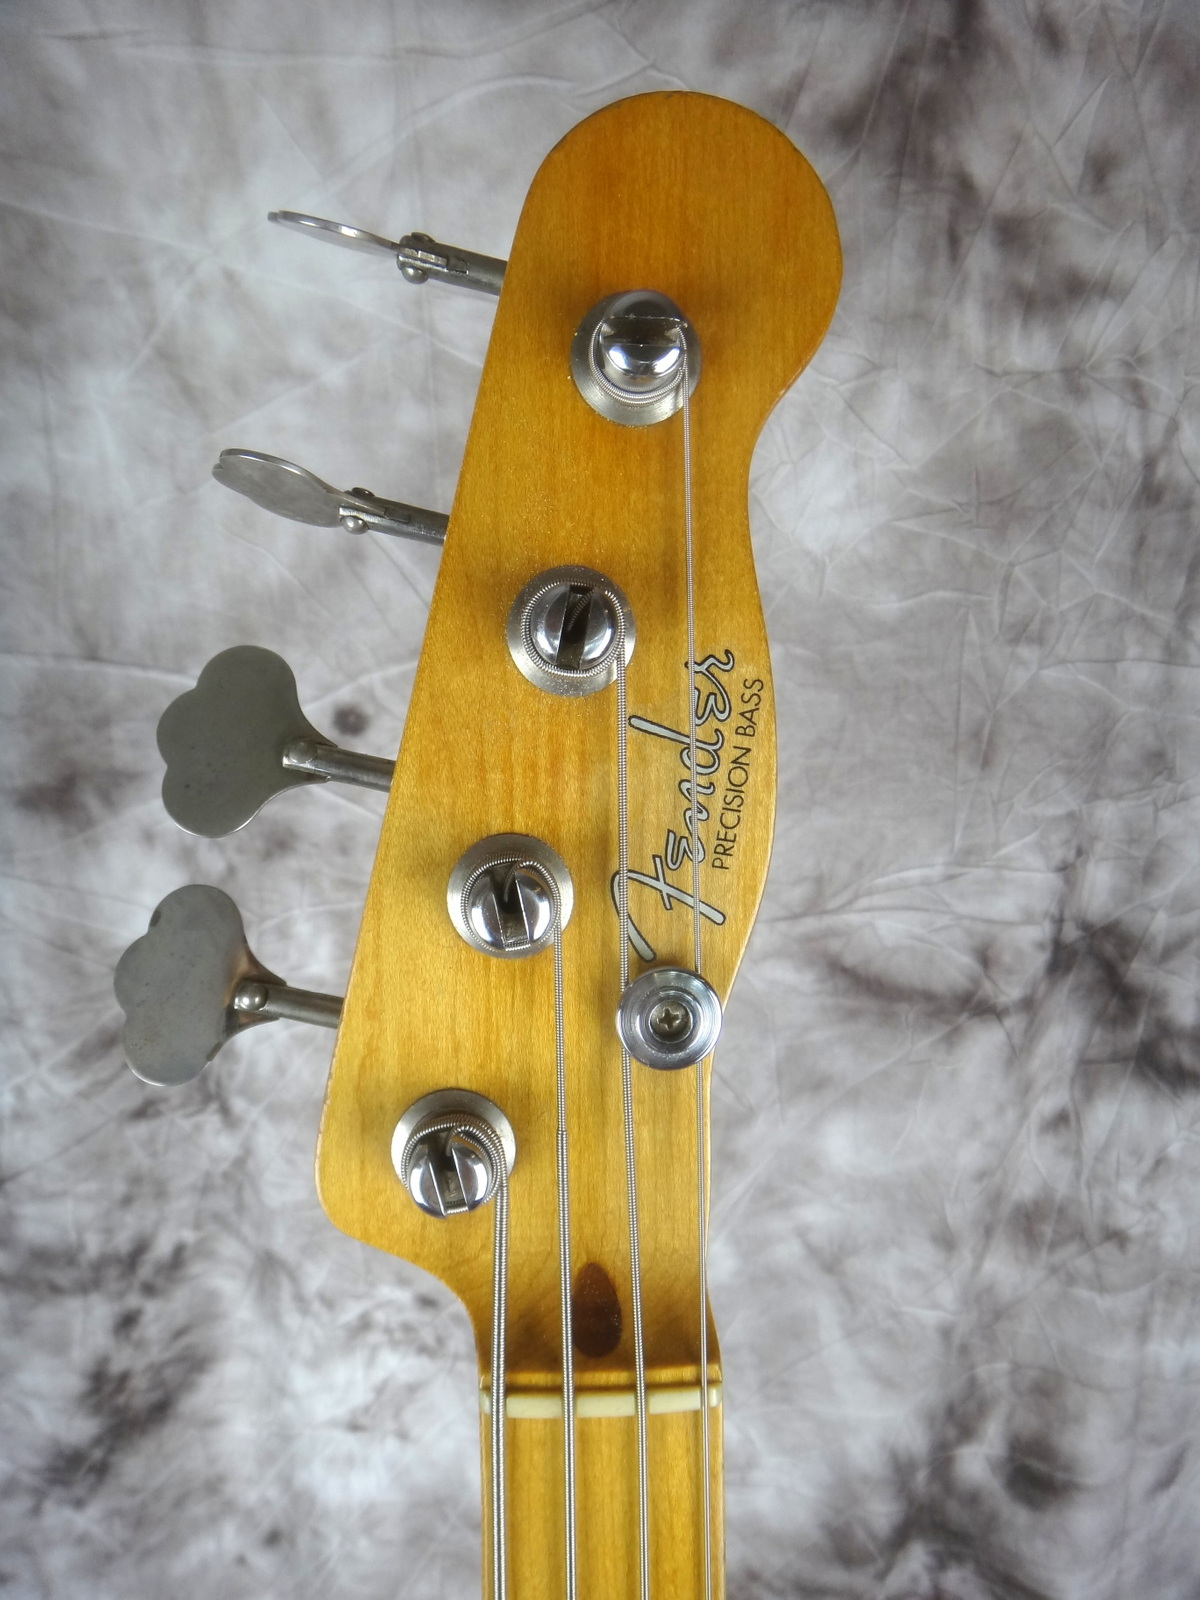 img/vintage/1599/Fender-Precision-Bass-1955-blond-003.JPG